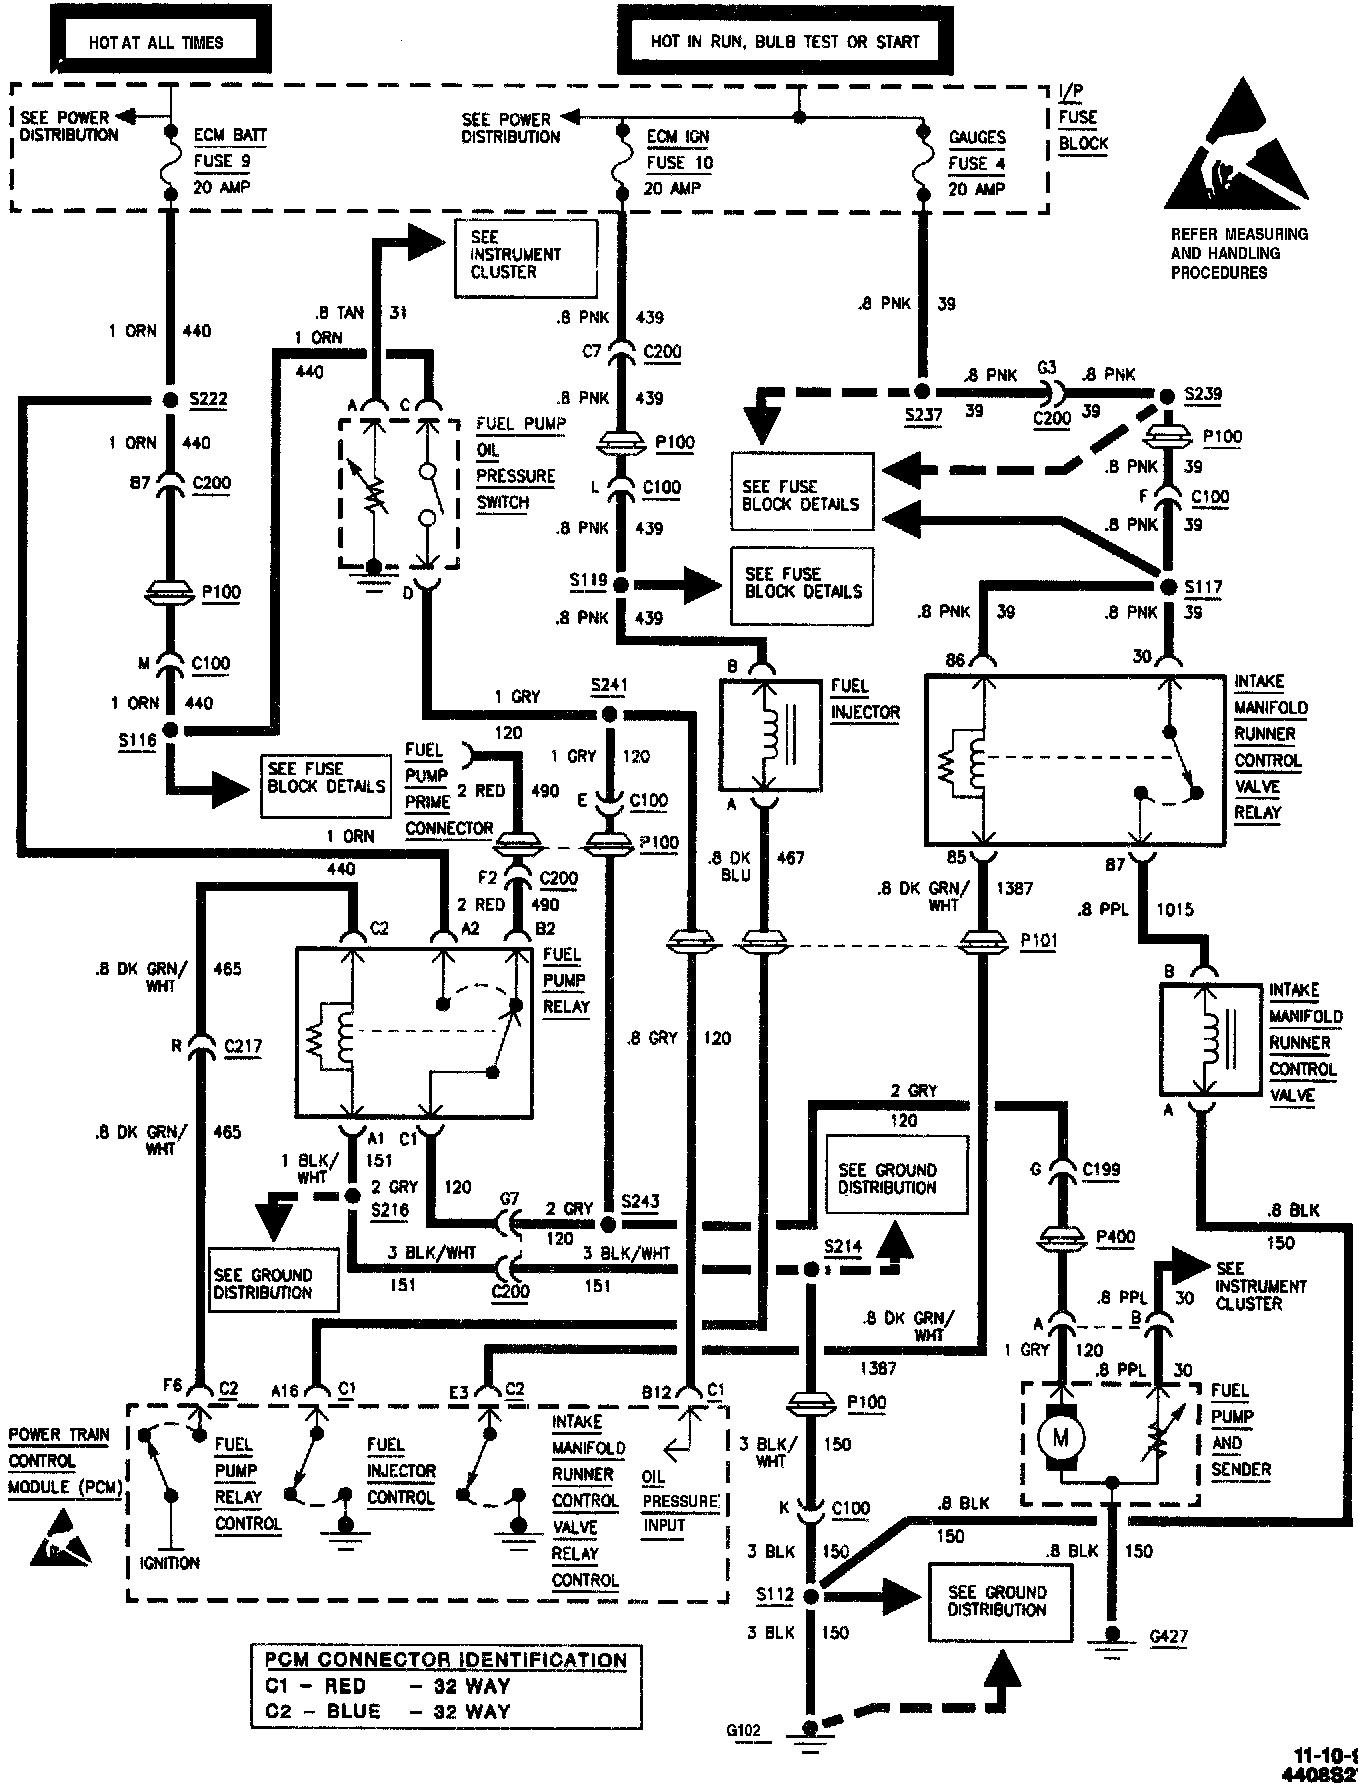 Chevy Dual Tank Fuel Switch Wiring Diagram - Wiring Diagrams on